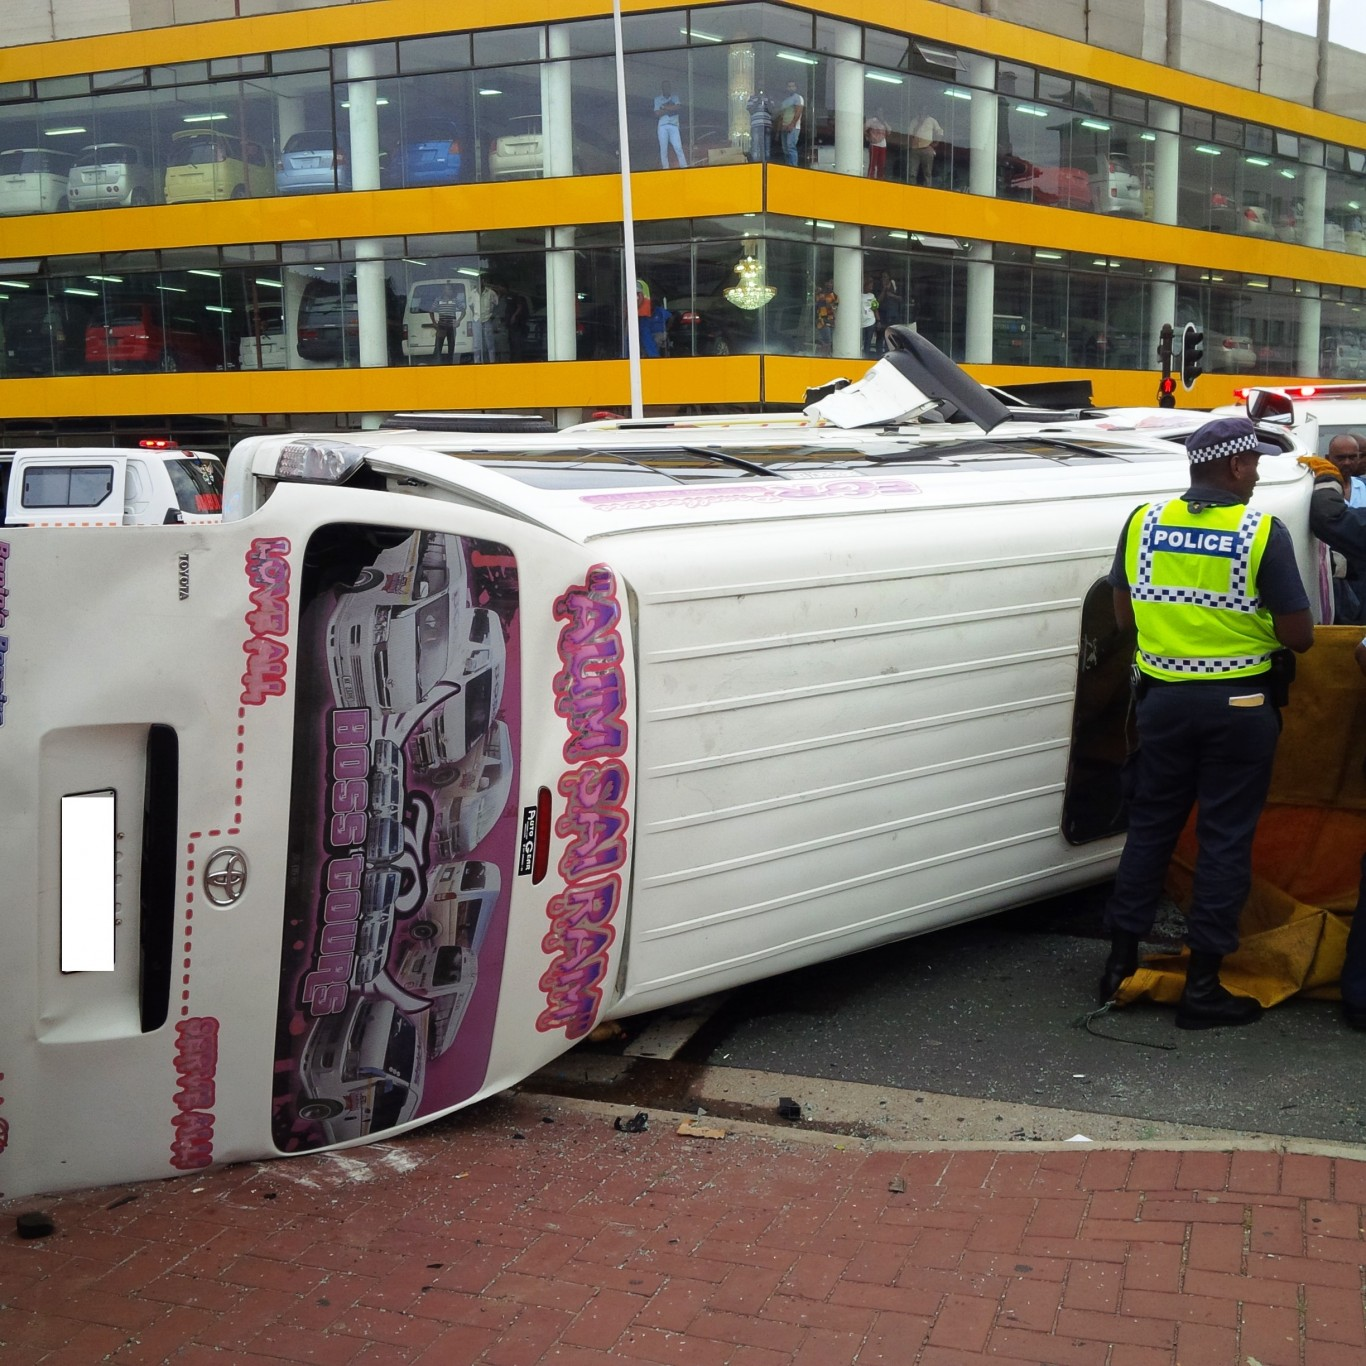 Taxi collision at intersection leaves 1 dead, 17 injured Durban